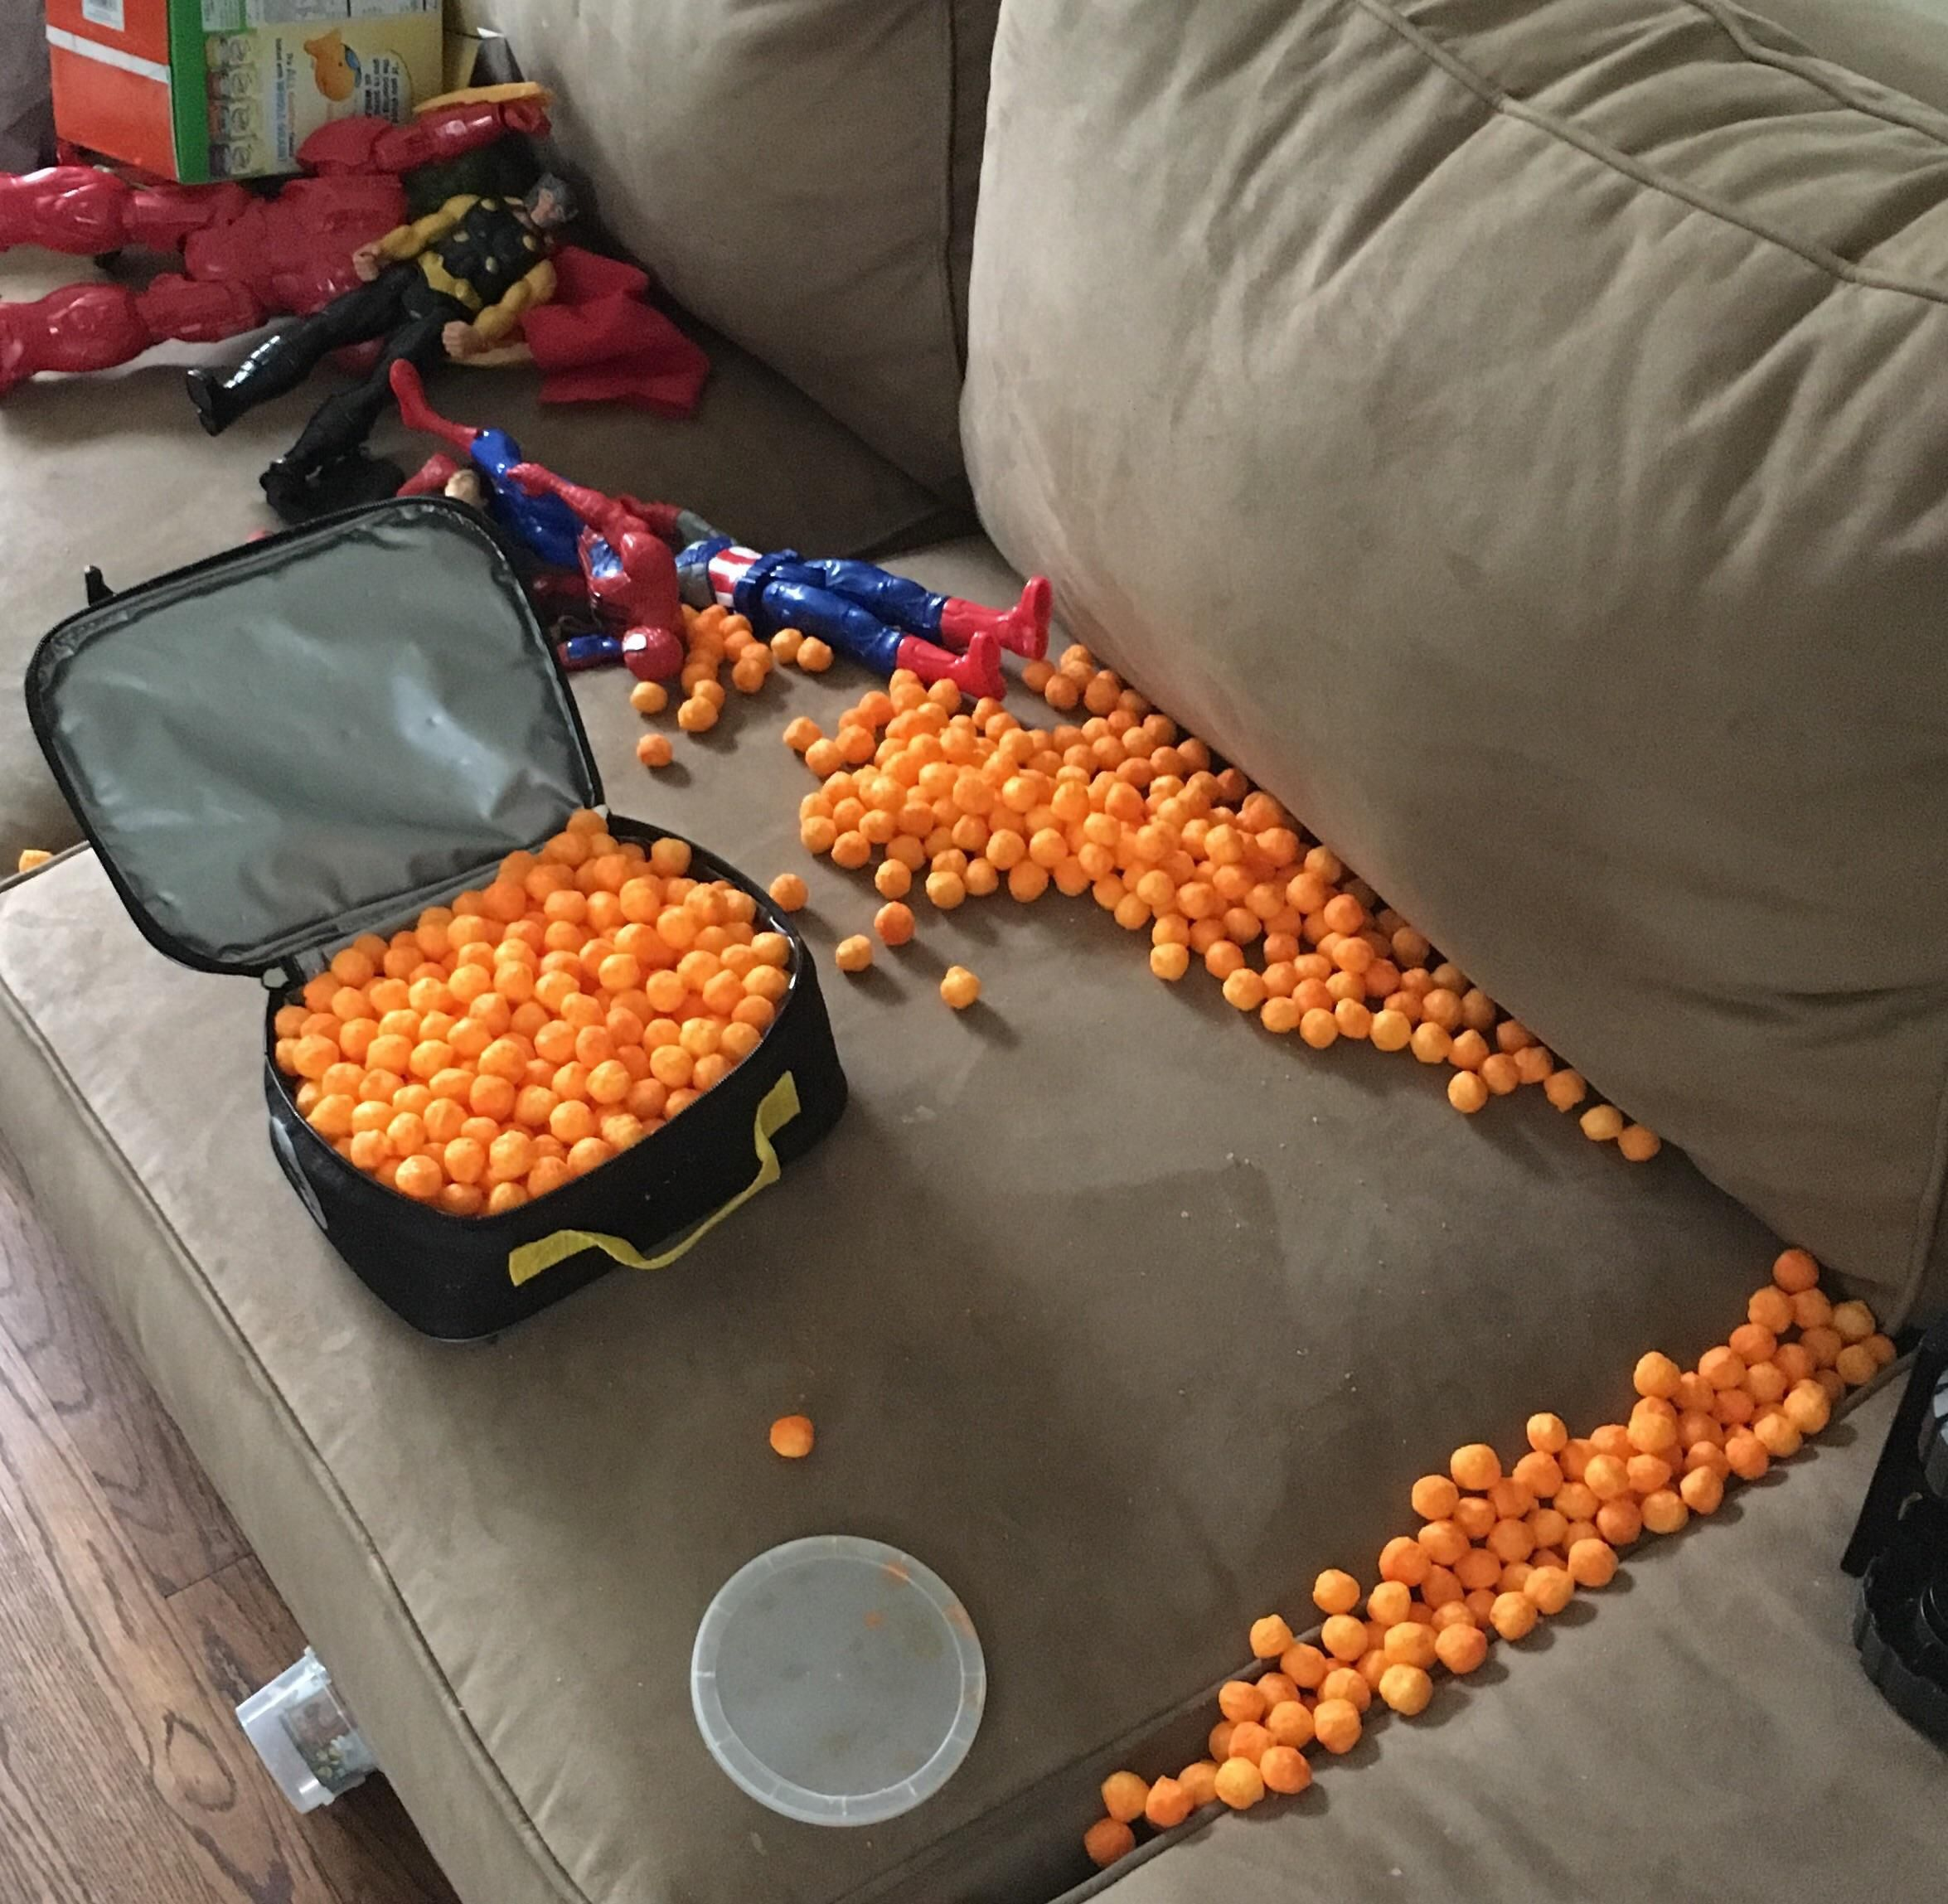 My 3 Year Old Packed His Own Lunch Today Daddy Love Family Dad Daughter Baby Best Funny Pictures Funny Pictures Funny